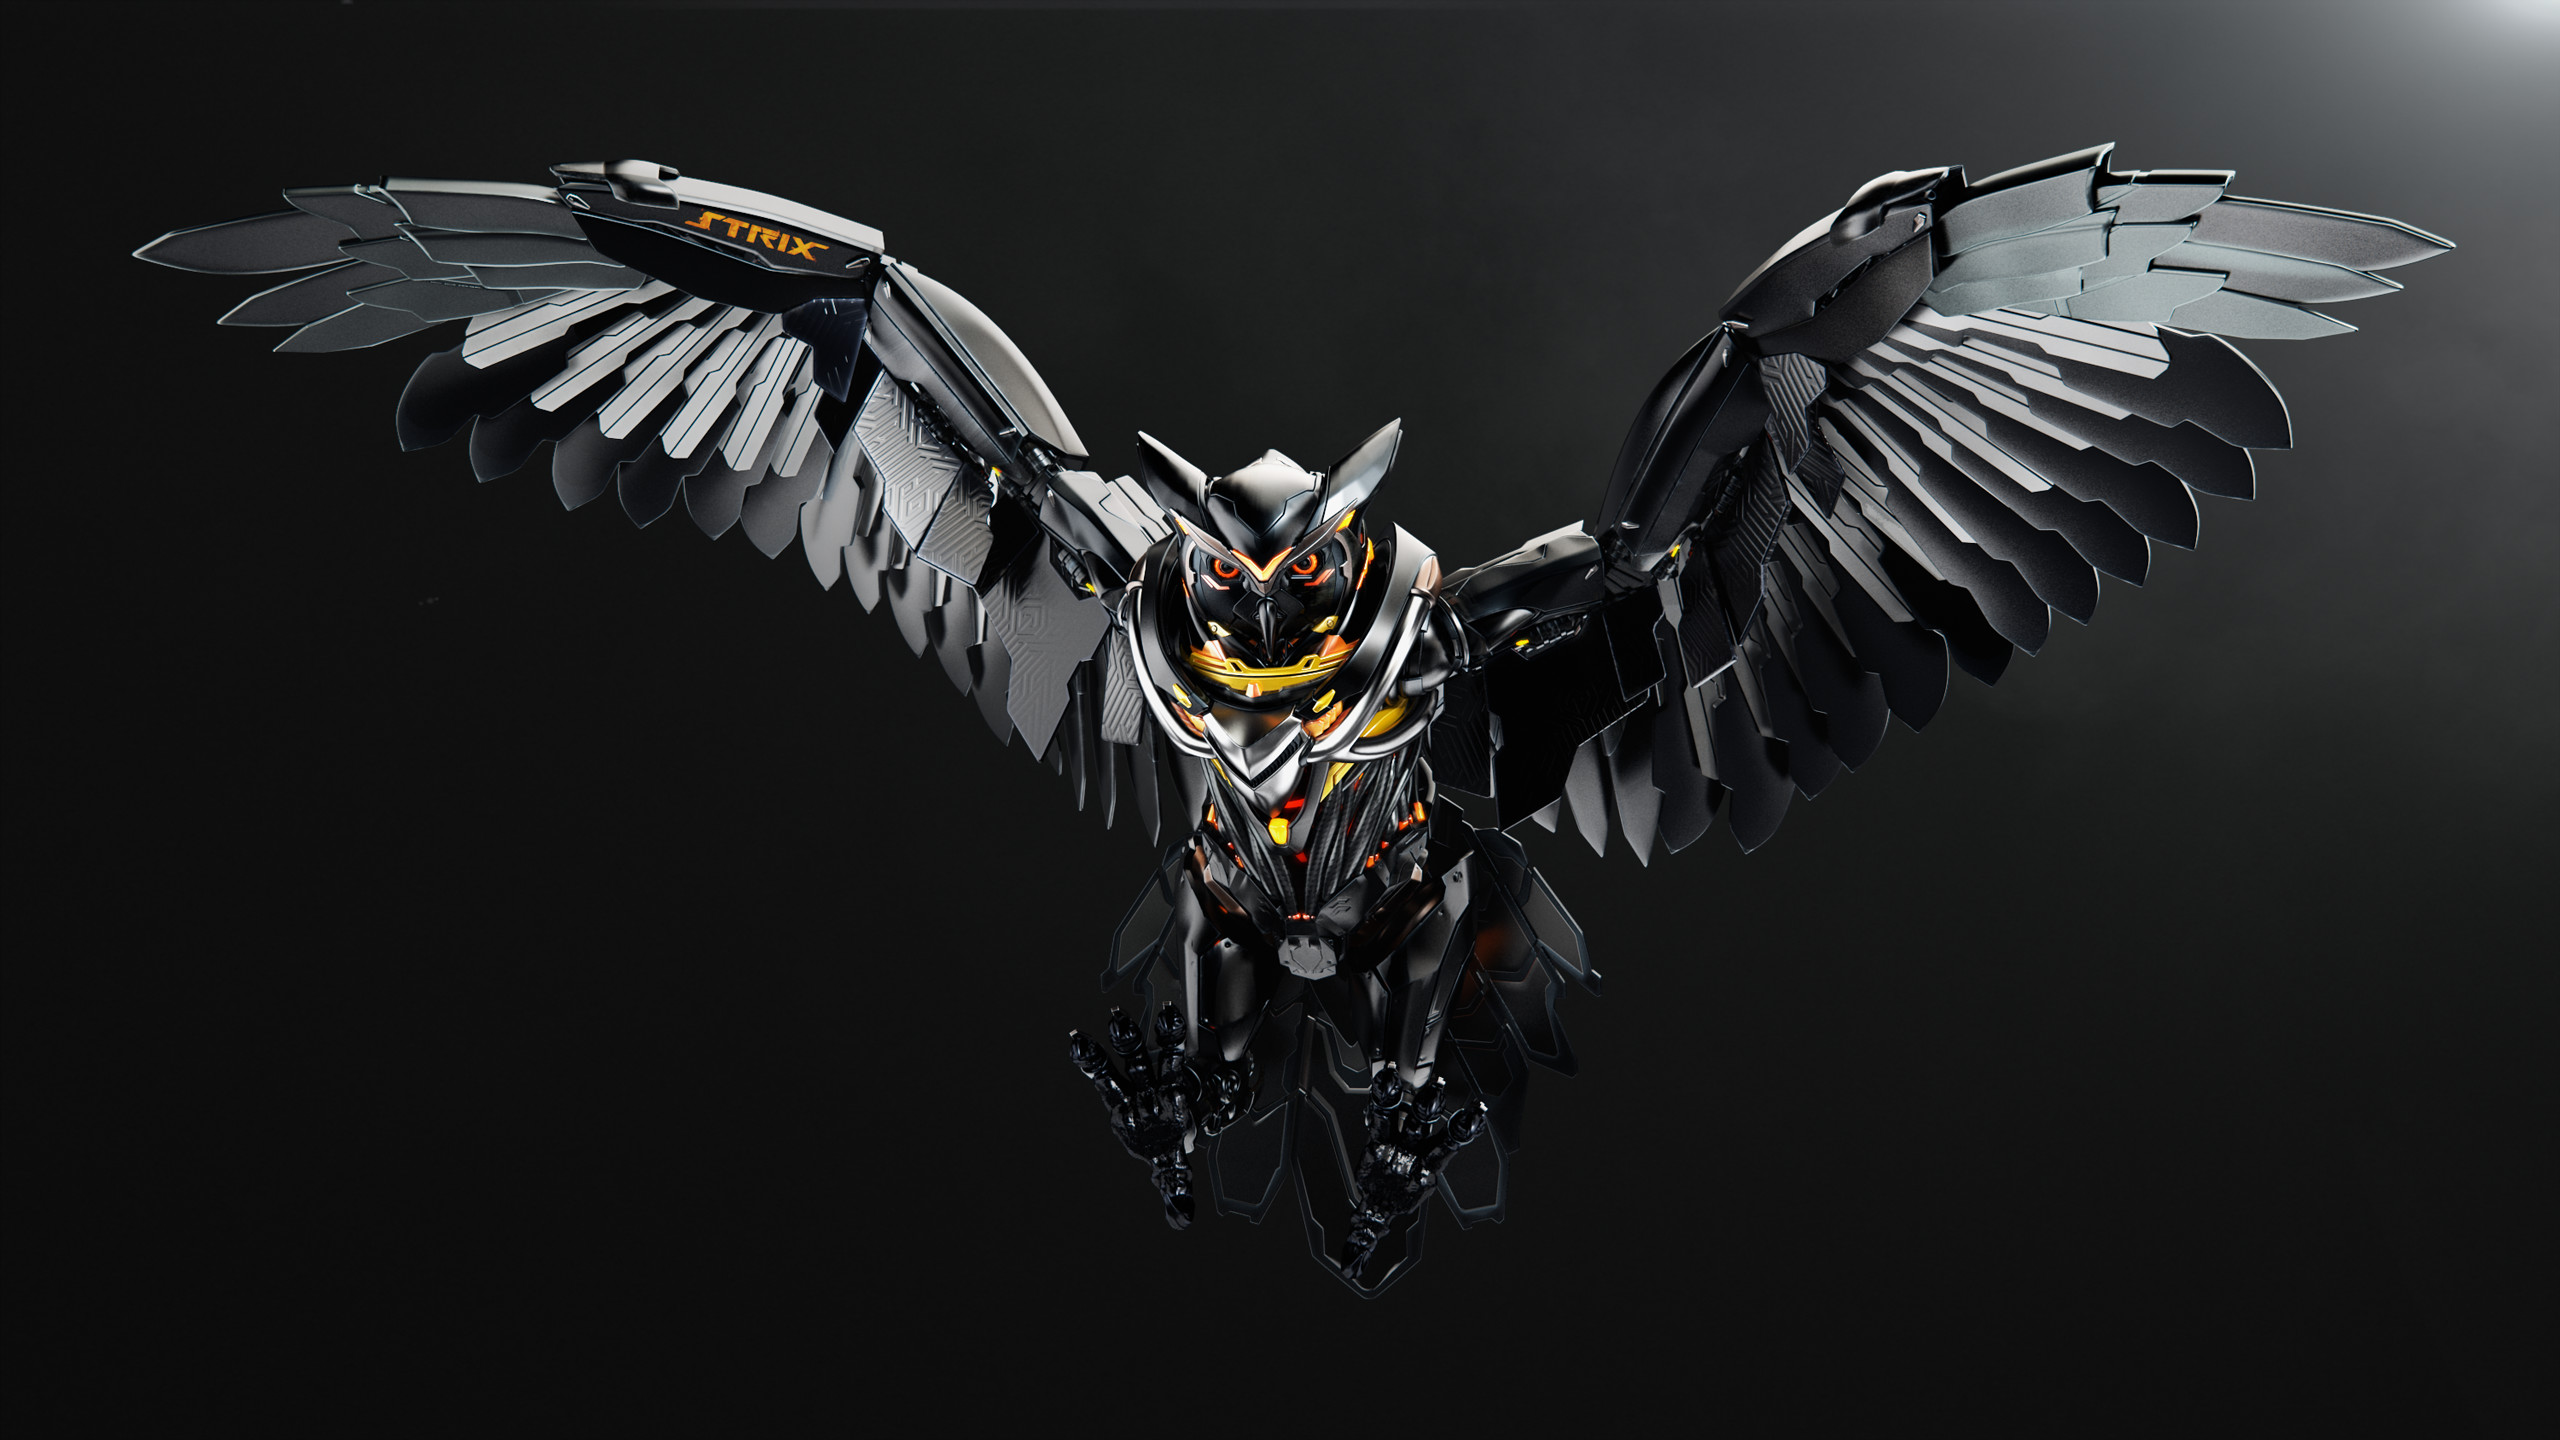 Res: 2560x1440, Owl Wallpapers 8 - 2560 X 1440